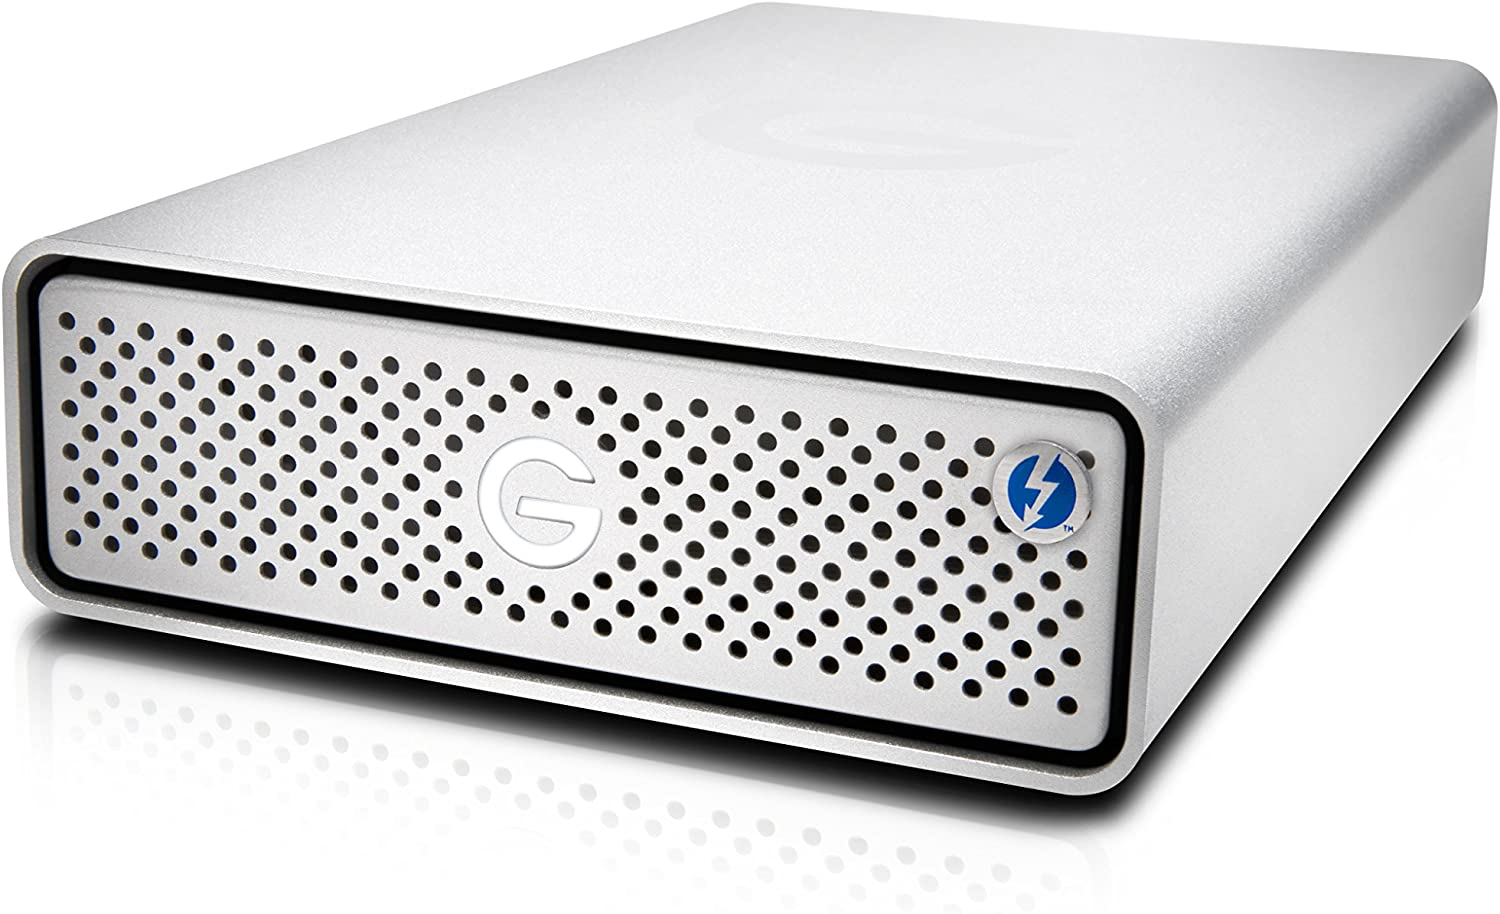 G-Technology 4TB G-DRIVE with Thunderbolt 3 and USB-C Desktop External Hard Drive, Silver - 0G05363-1